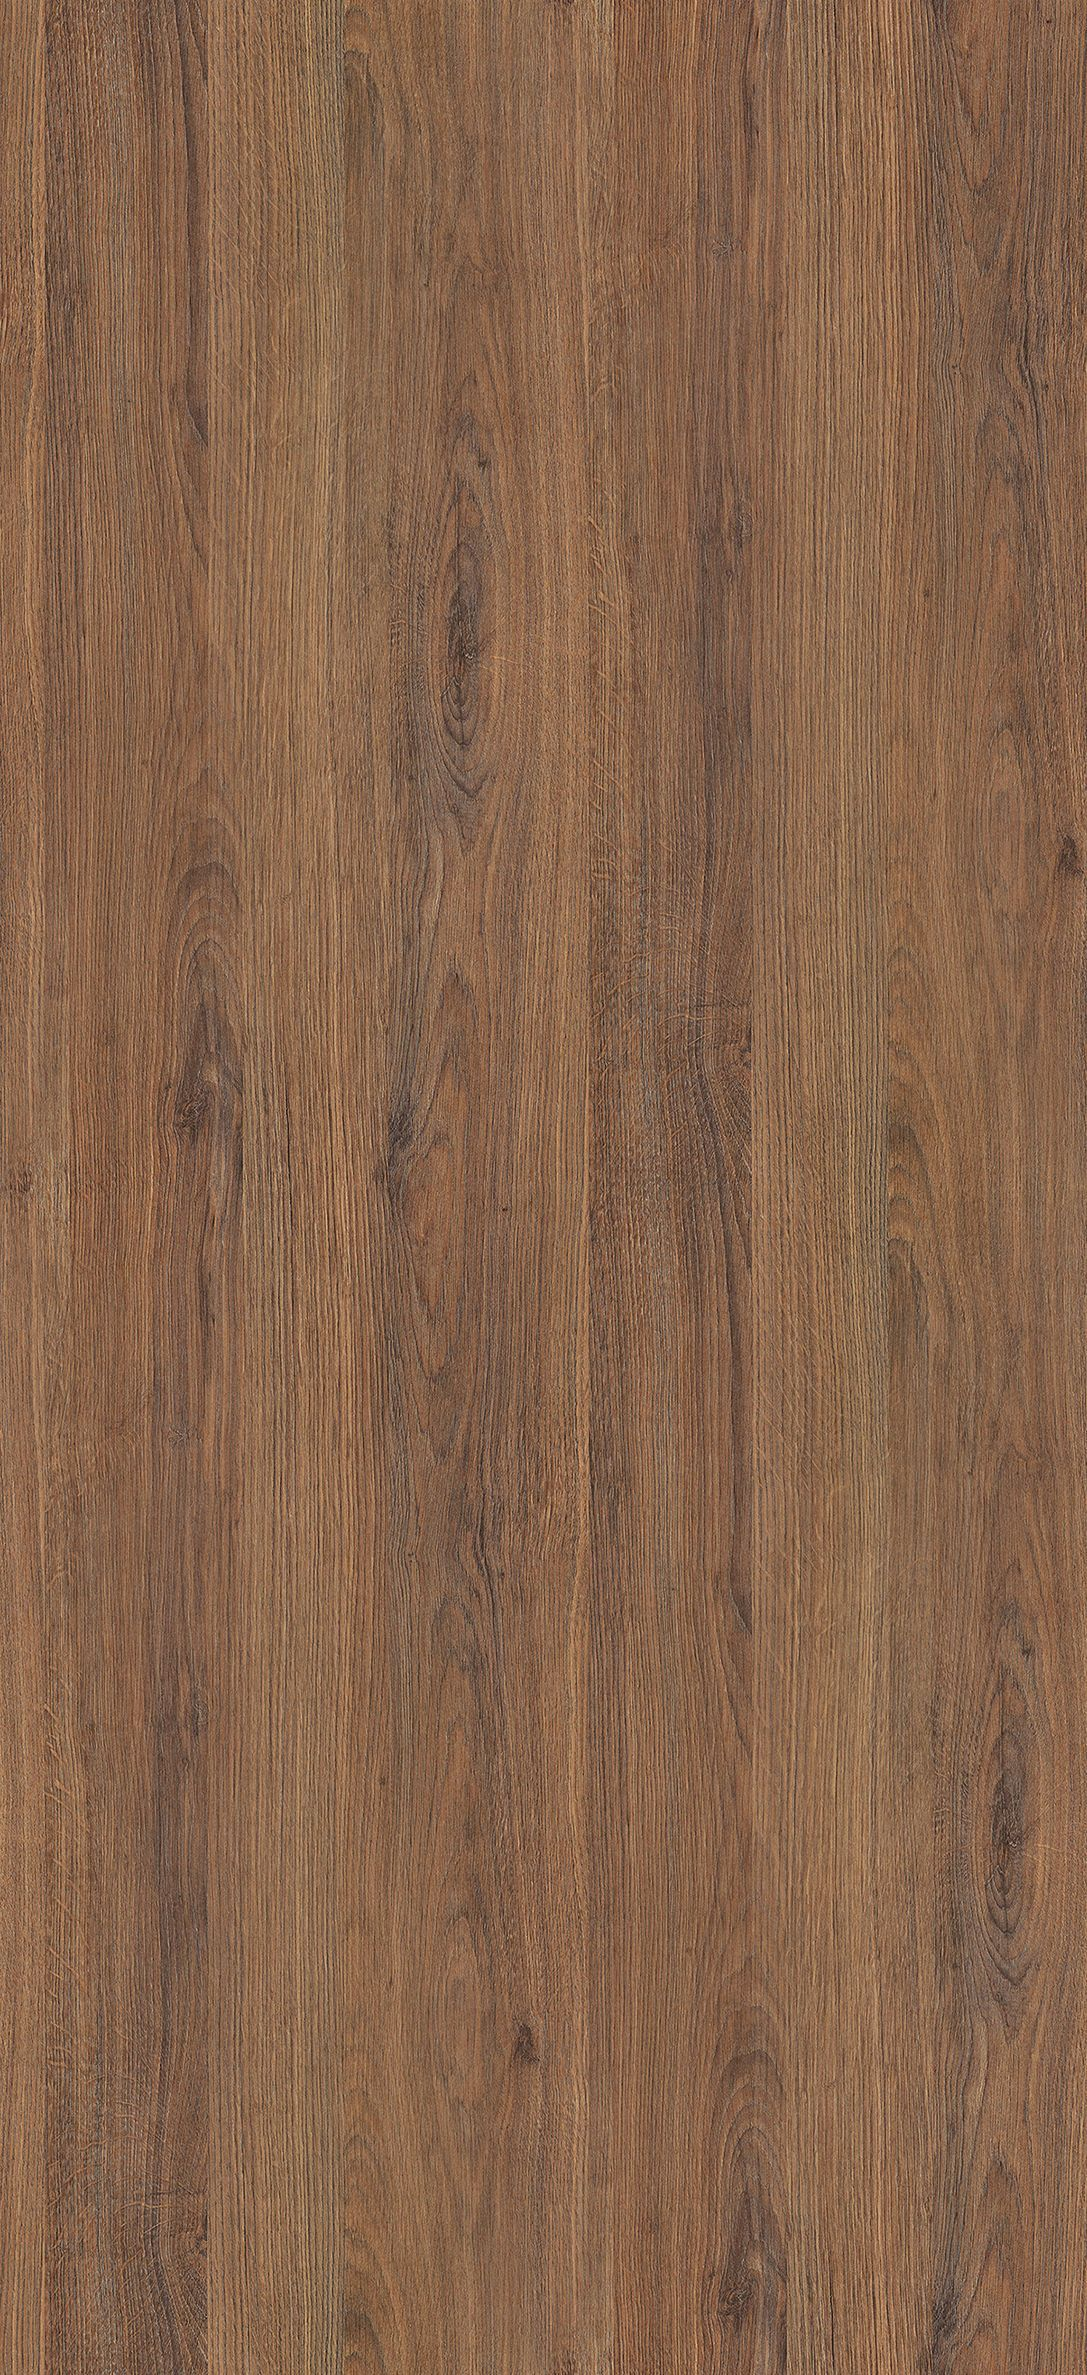 Pin By Chen On Restaurant Veneer Texture Walnut Wood Texture Wood Texture Seamless